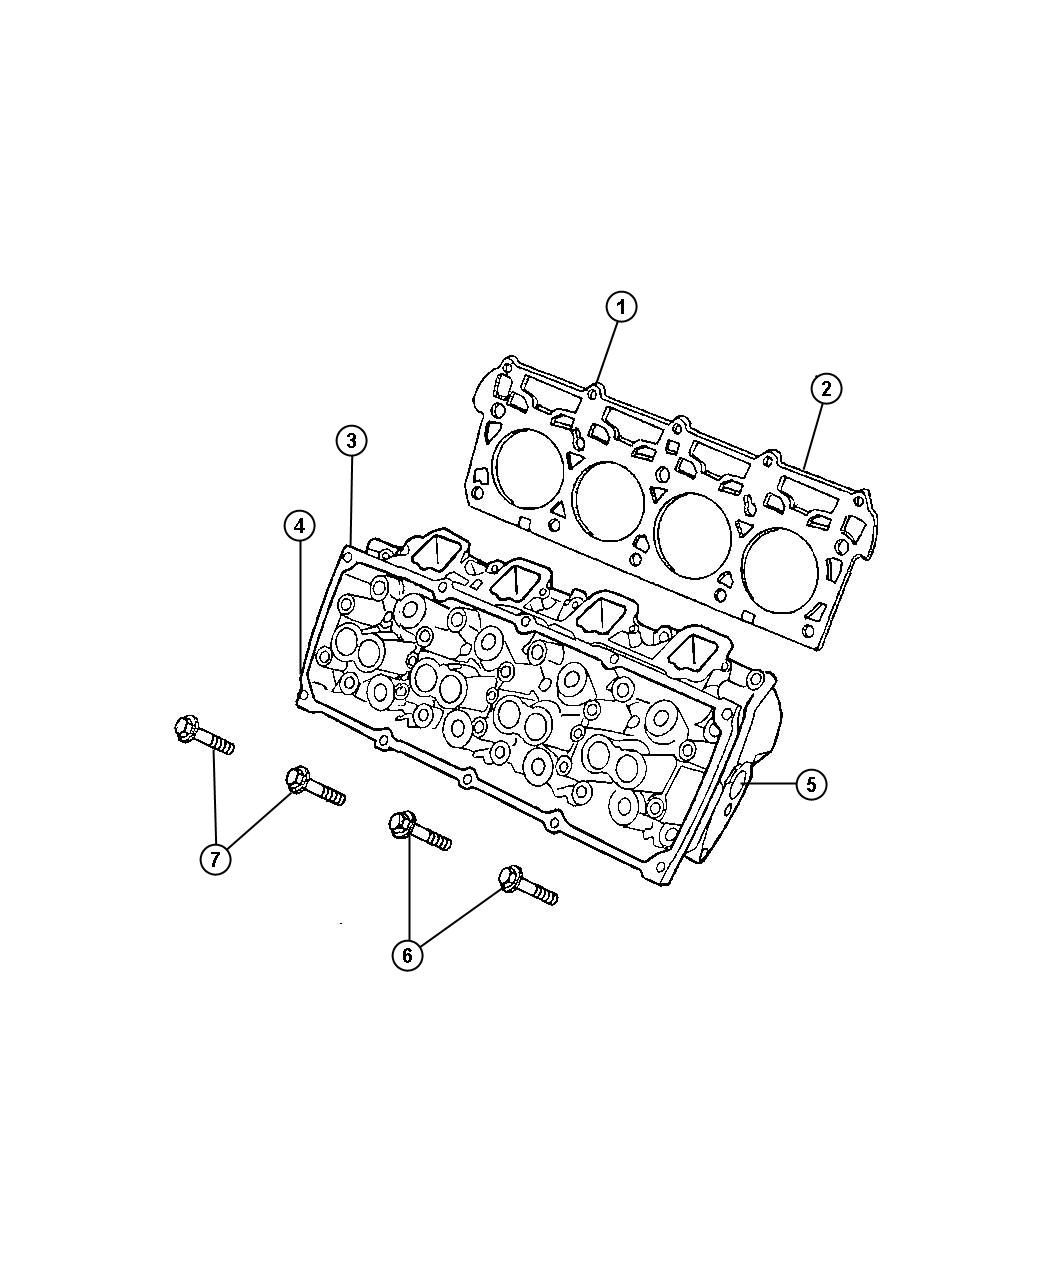 Ram Head Head Assembly Cylinder Engine Cylinder